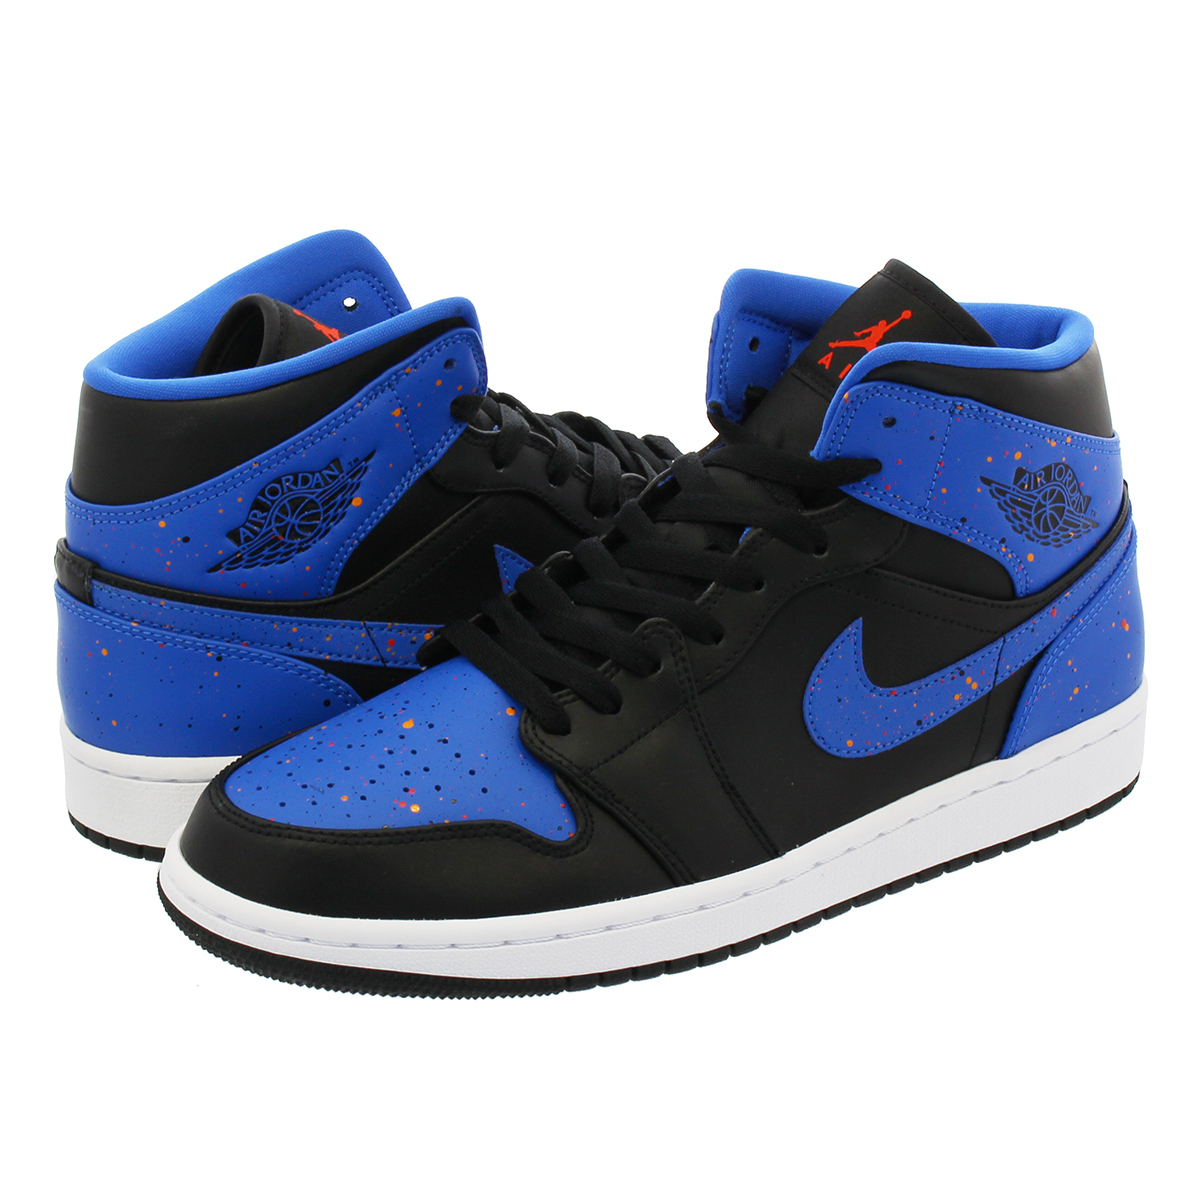 official photos d082a 20662 NIKE AIR JORDAN 1 MID Nike Air Jordan 1 mid BLACK SIGNAL BLUE ORANGE ...